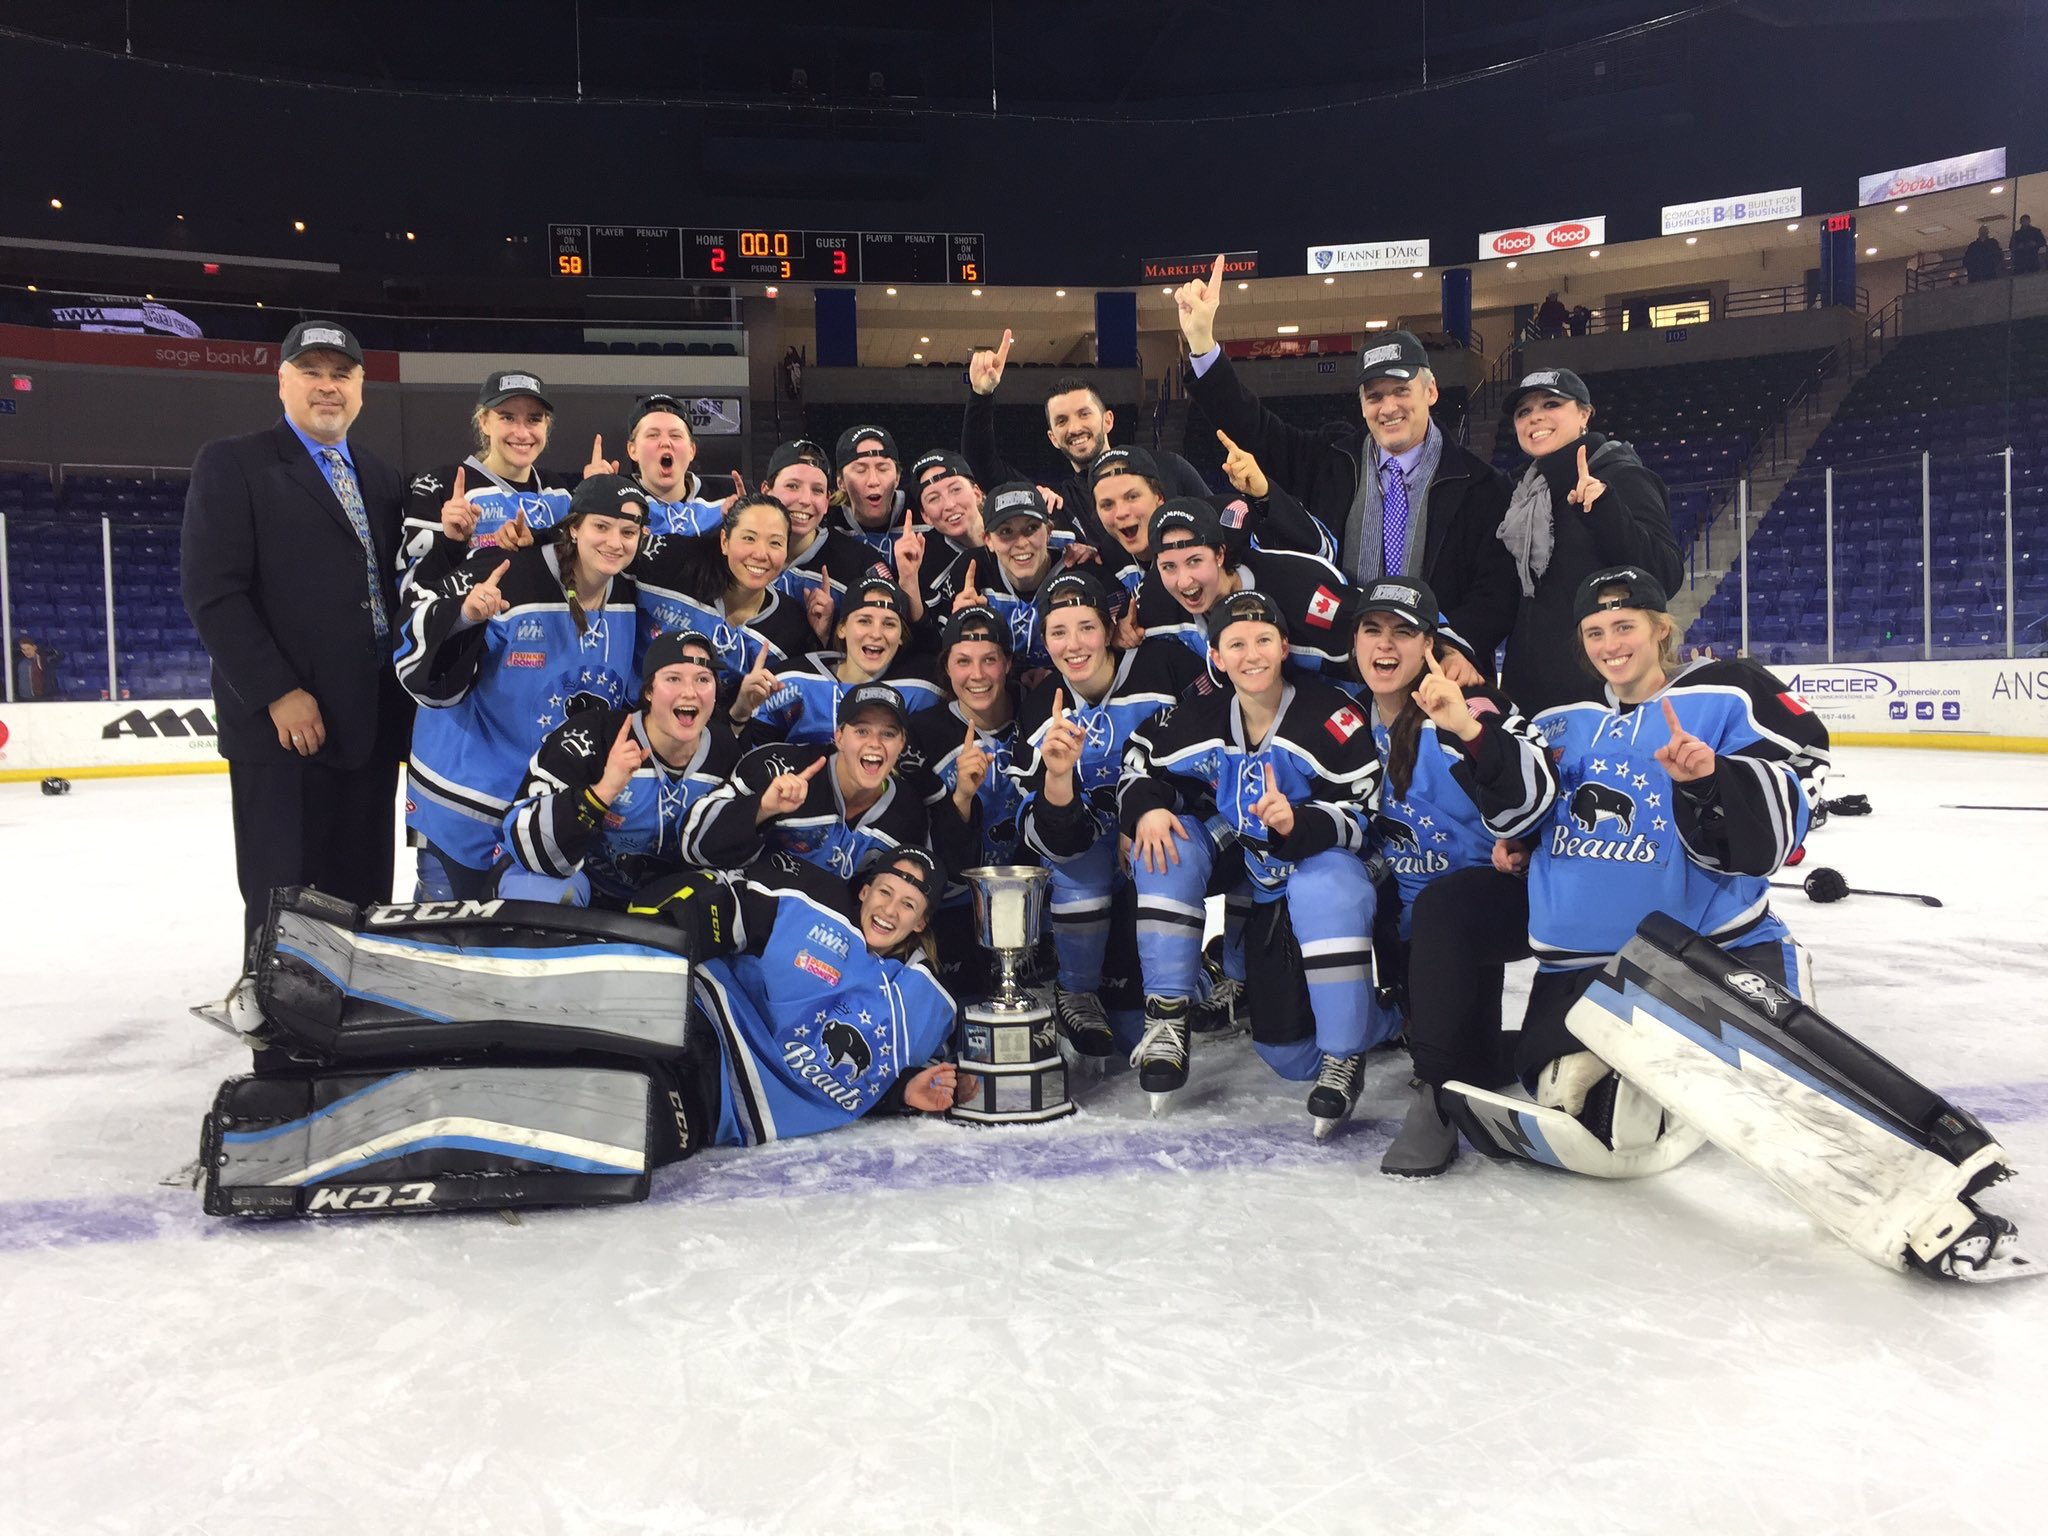 The Buffalo Beauts won the 2017 Isobel Cup.(Buffalo Beauts)